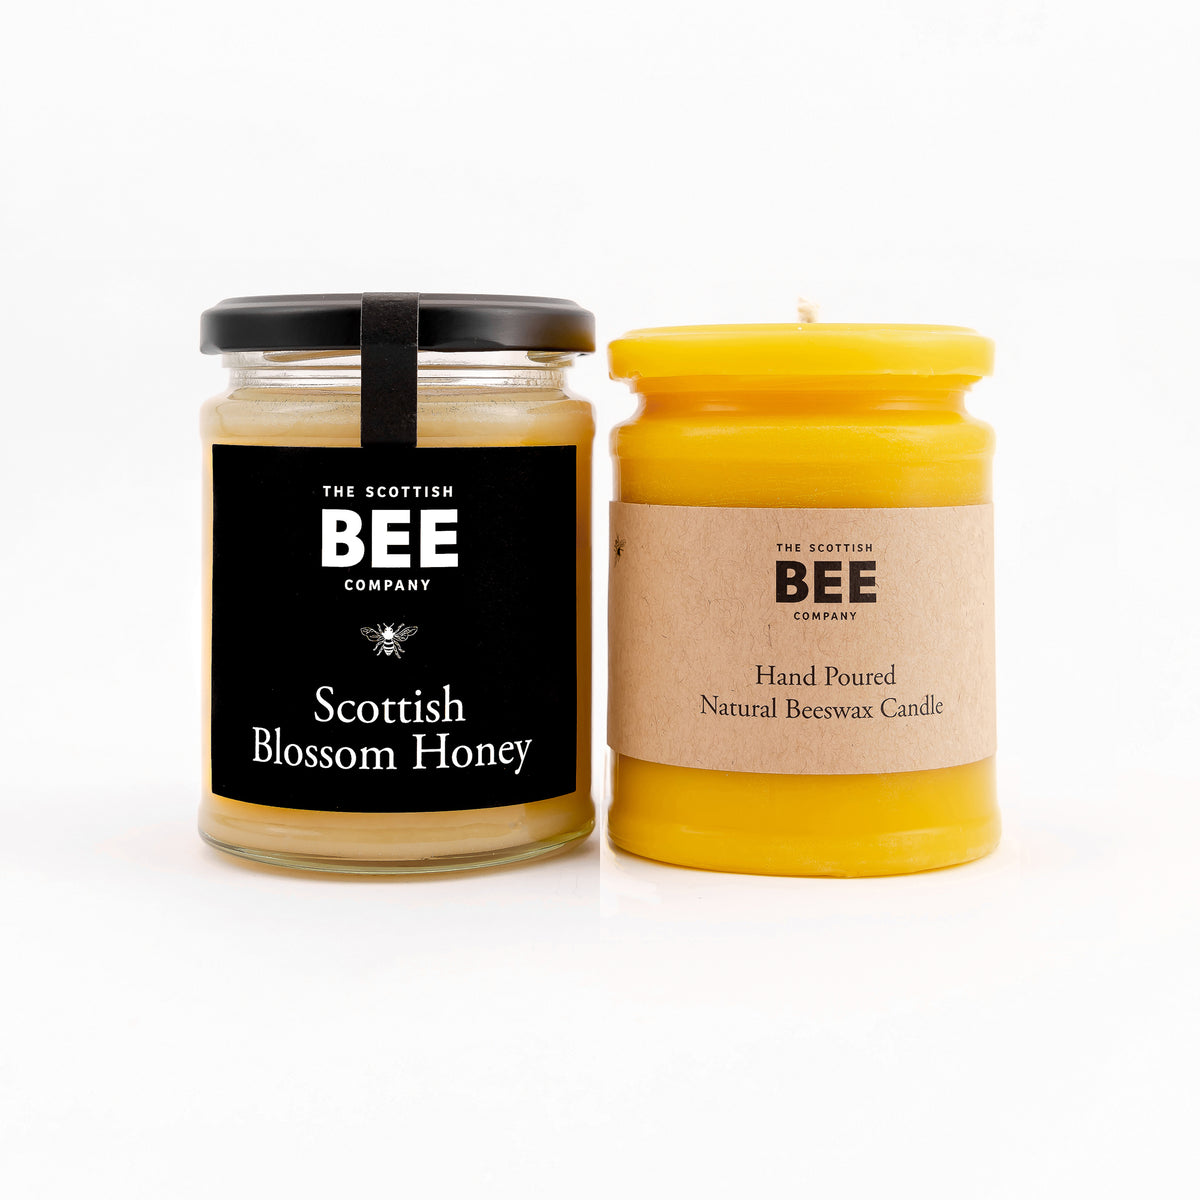 Scottish Blossom Honey and Beeswax Candle